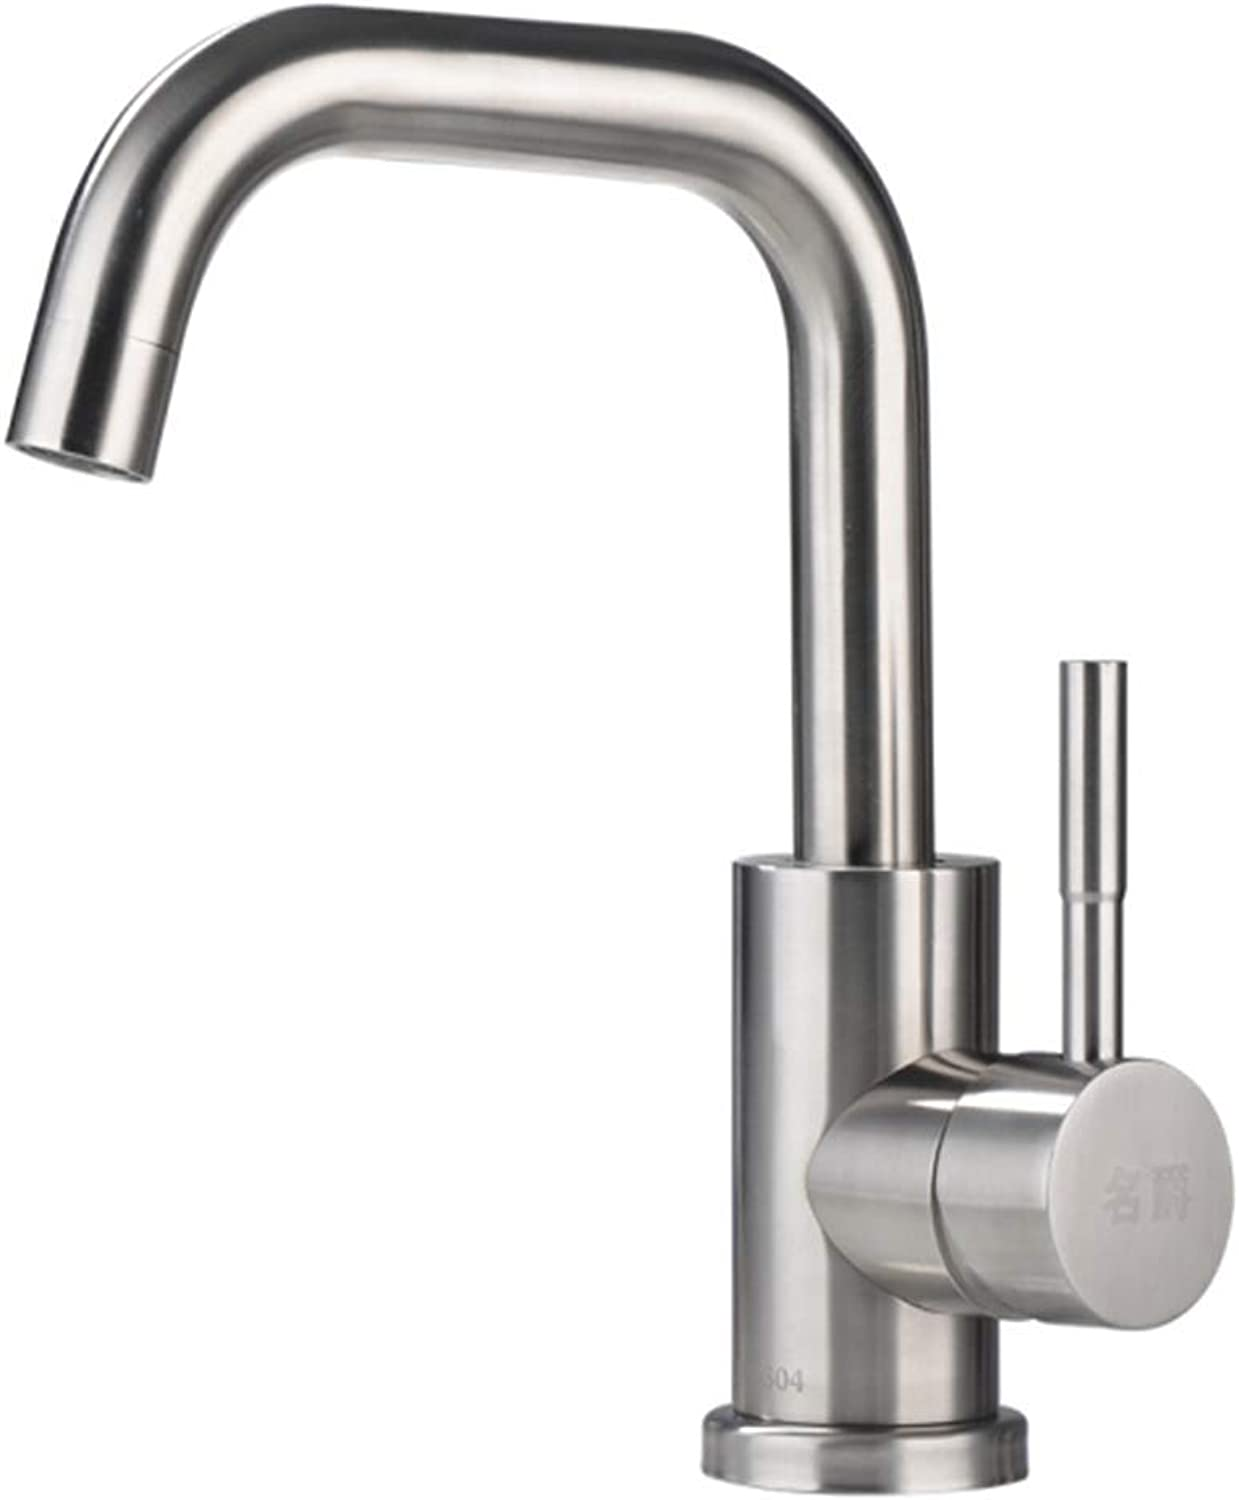 Counter Drinking Designer Arch304 Stainless Steel Basin Faucet Bathroom Washbasin 7-Shaped Hot and Cold Faucet